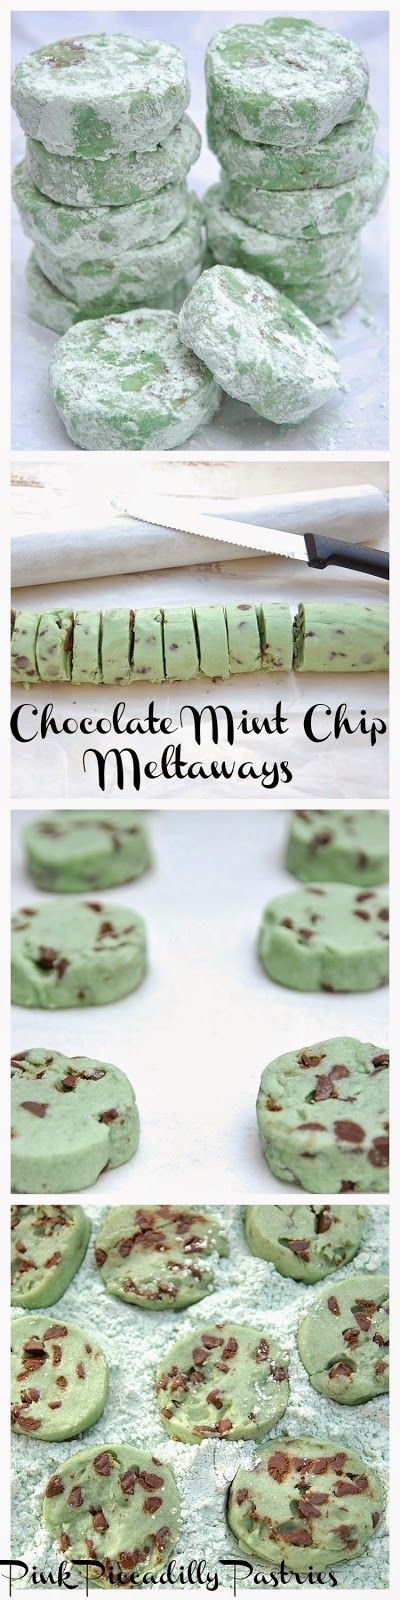 Chocolate Mint Chip  has always been my favorite flavor of    Ice Cream, so when I discovered that Duncan Hines  had   created a Mint C...